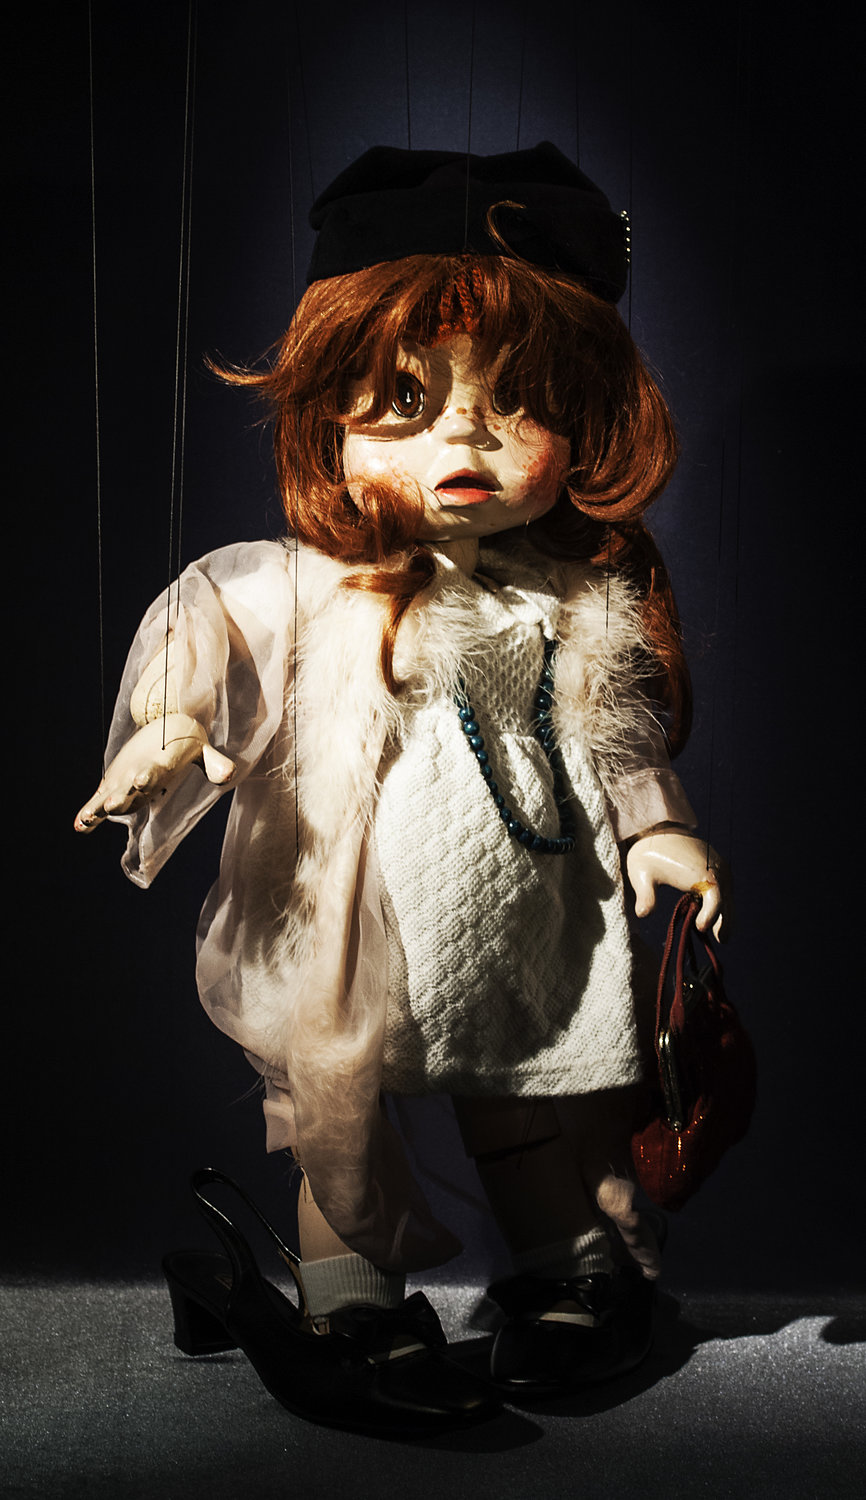 <em>Polly</em>, string puppet, in <em>Polly</em> (1981) by Coad Canada Puppets, direction: Luman Coad, design: Arlyn Coad. Award: Citation of Excellence in the Art of Puppetry from UNIMA-USA. Photo: Luman Coad